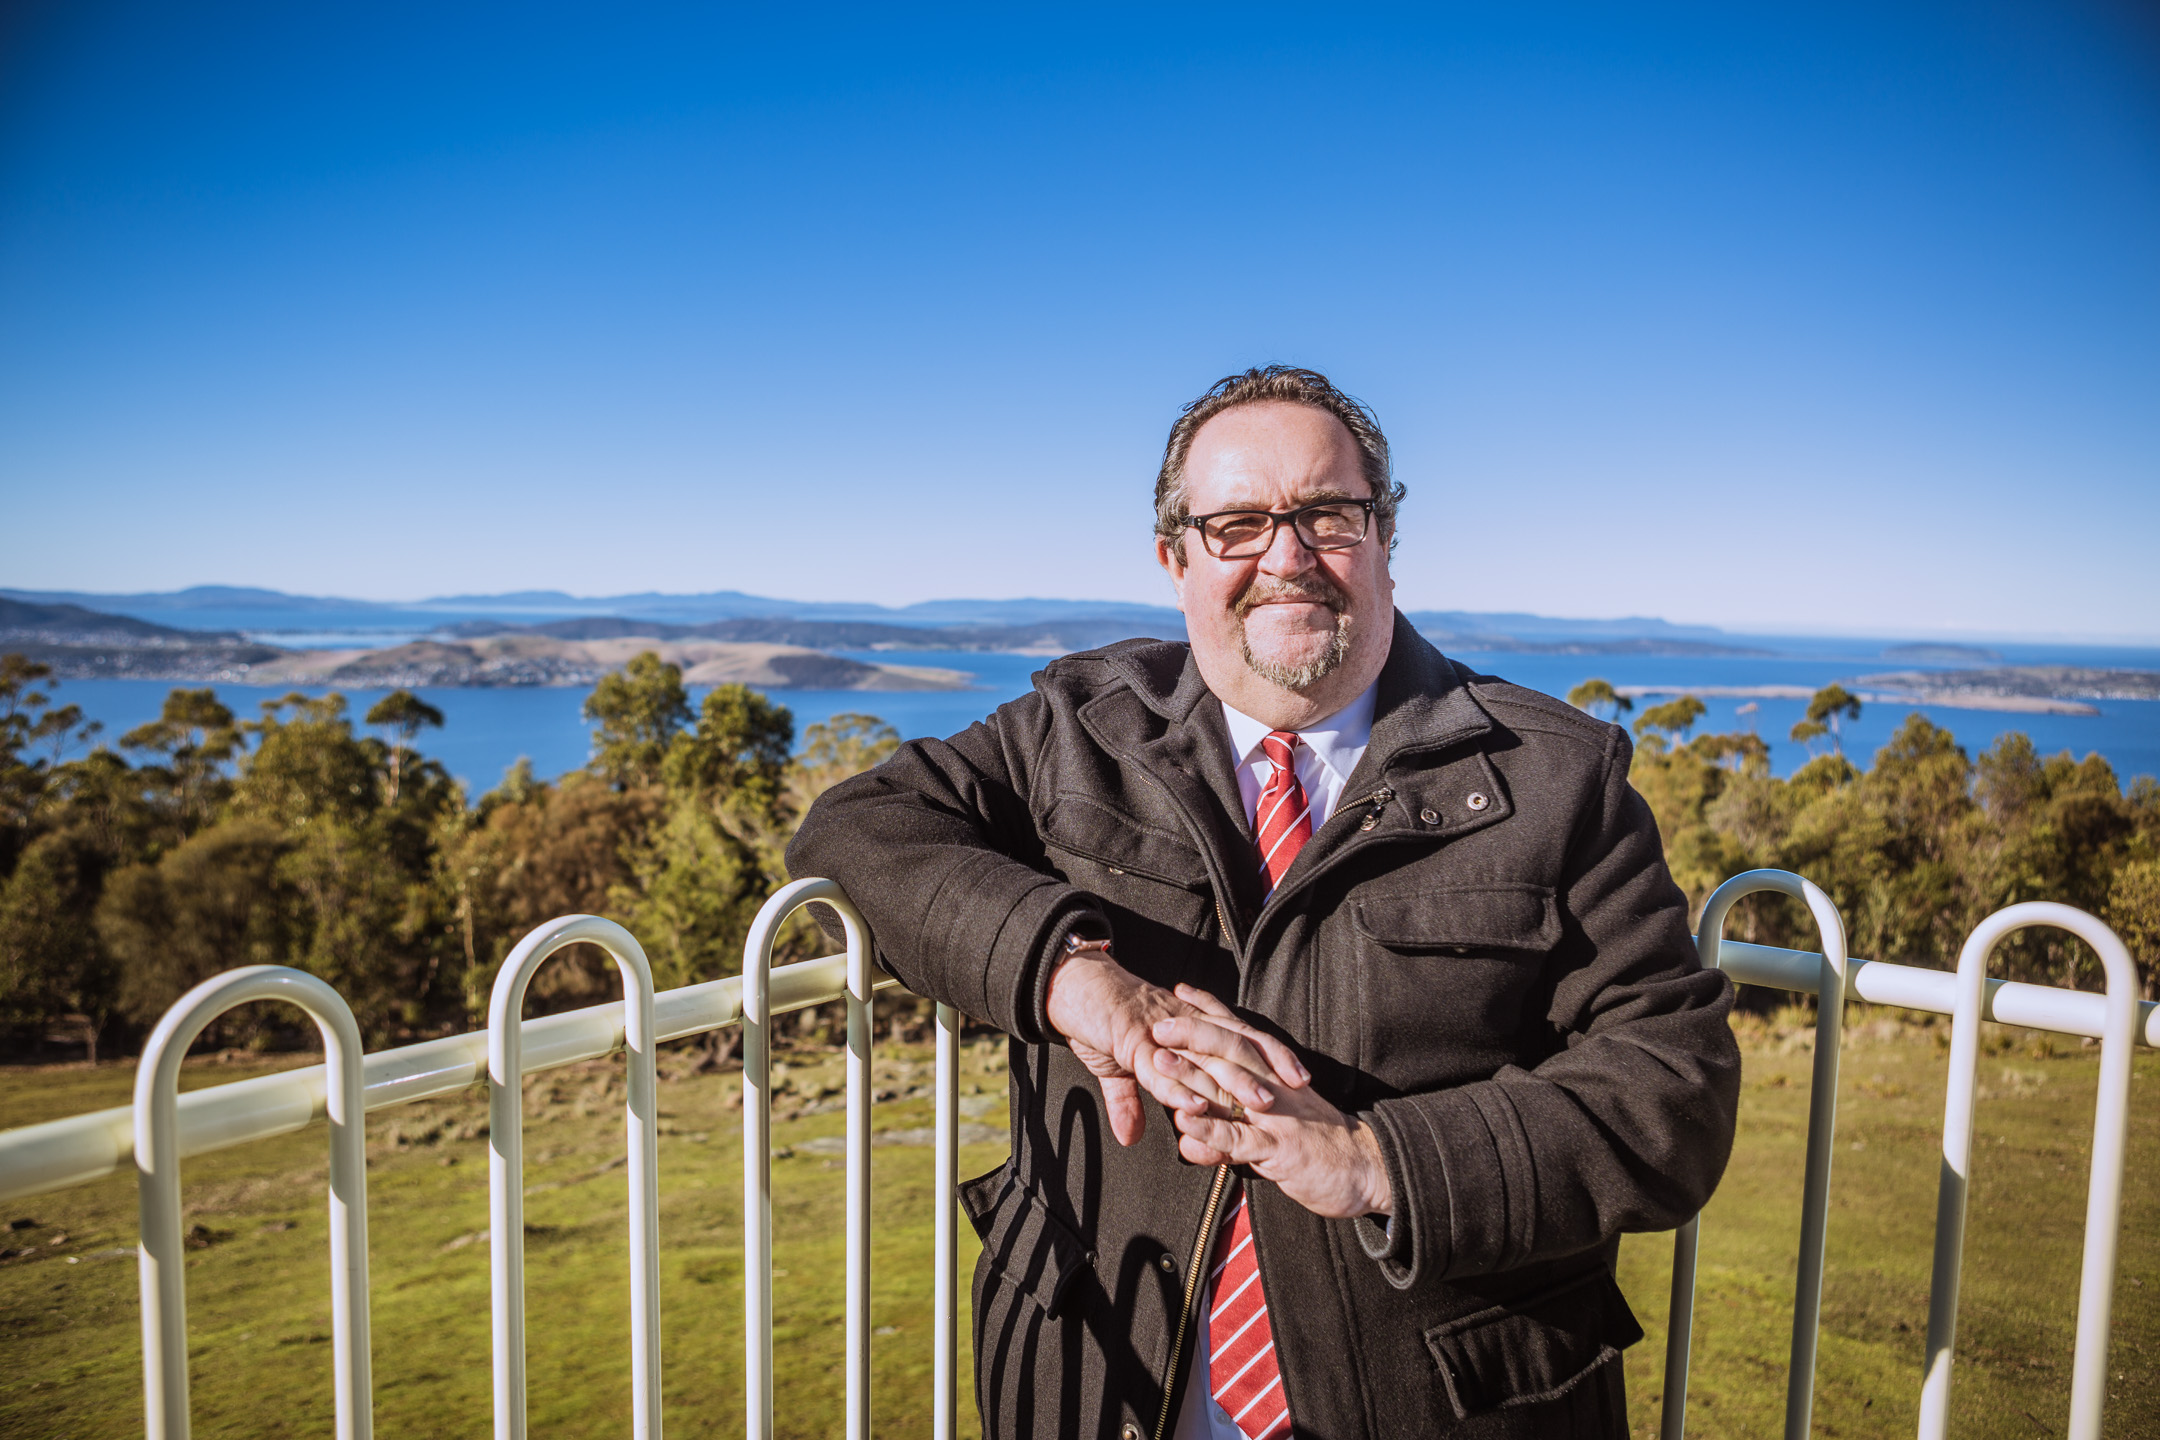 I want Hobart to be Australia's best regional capital city - - Darren Alexander